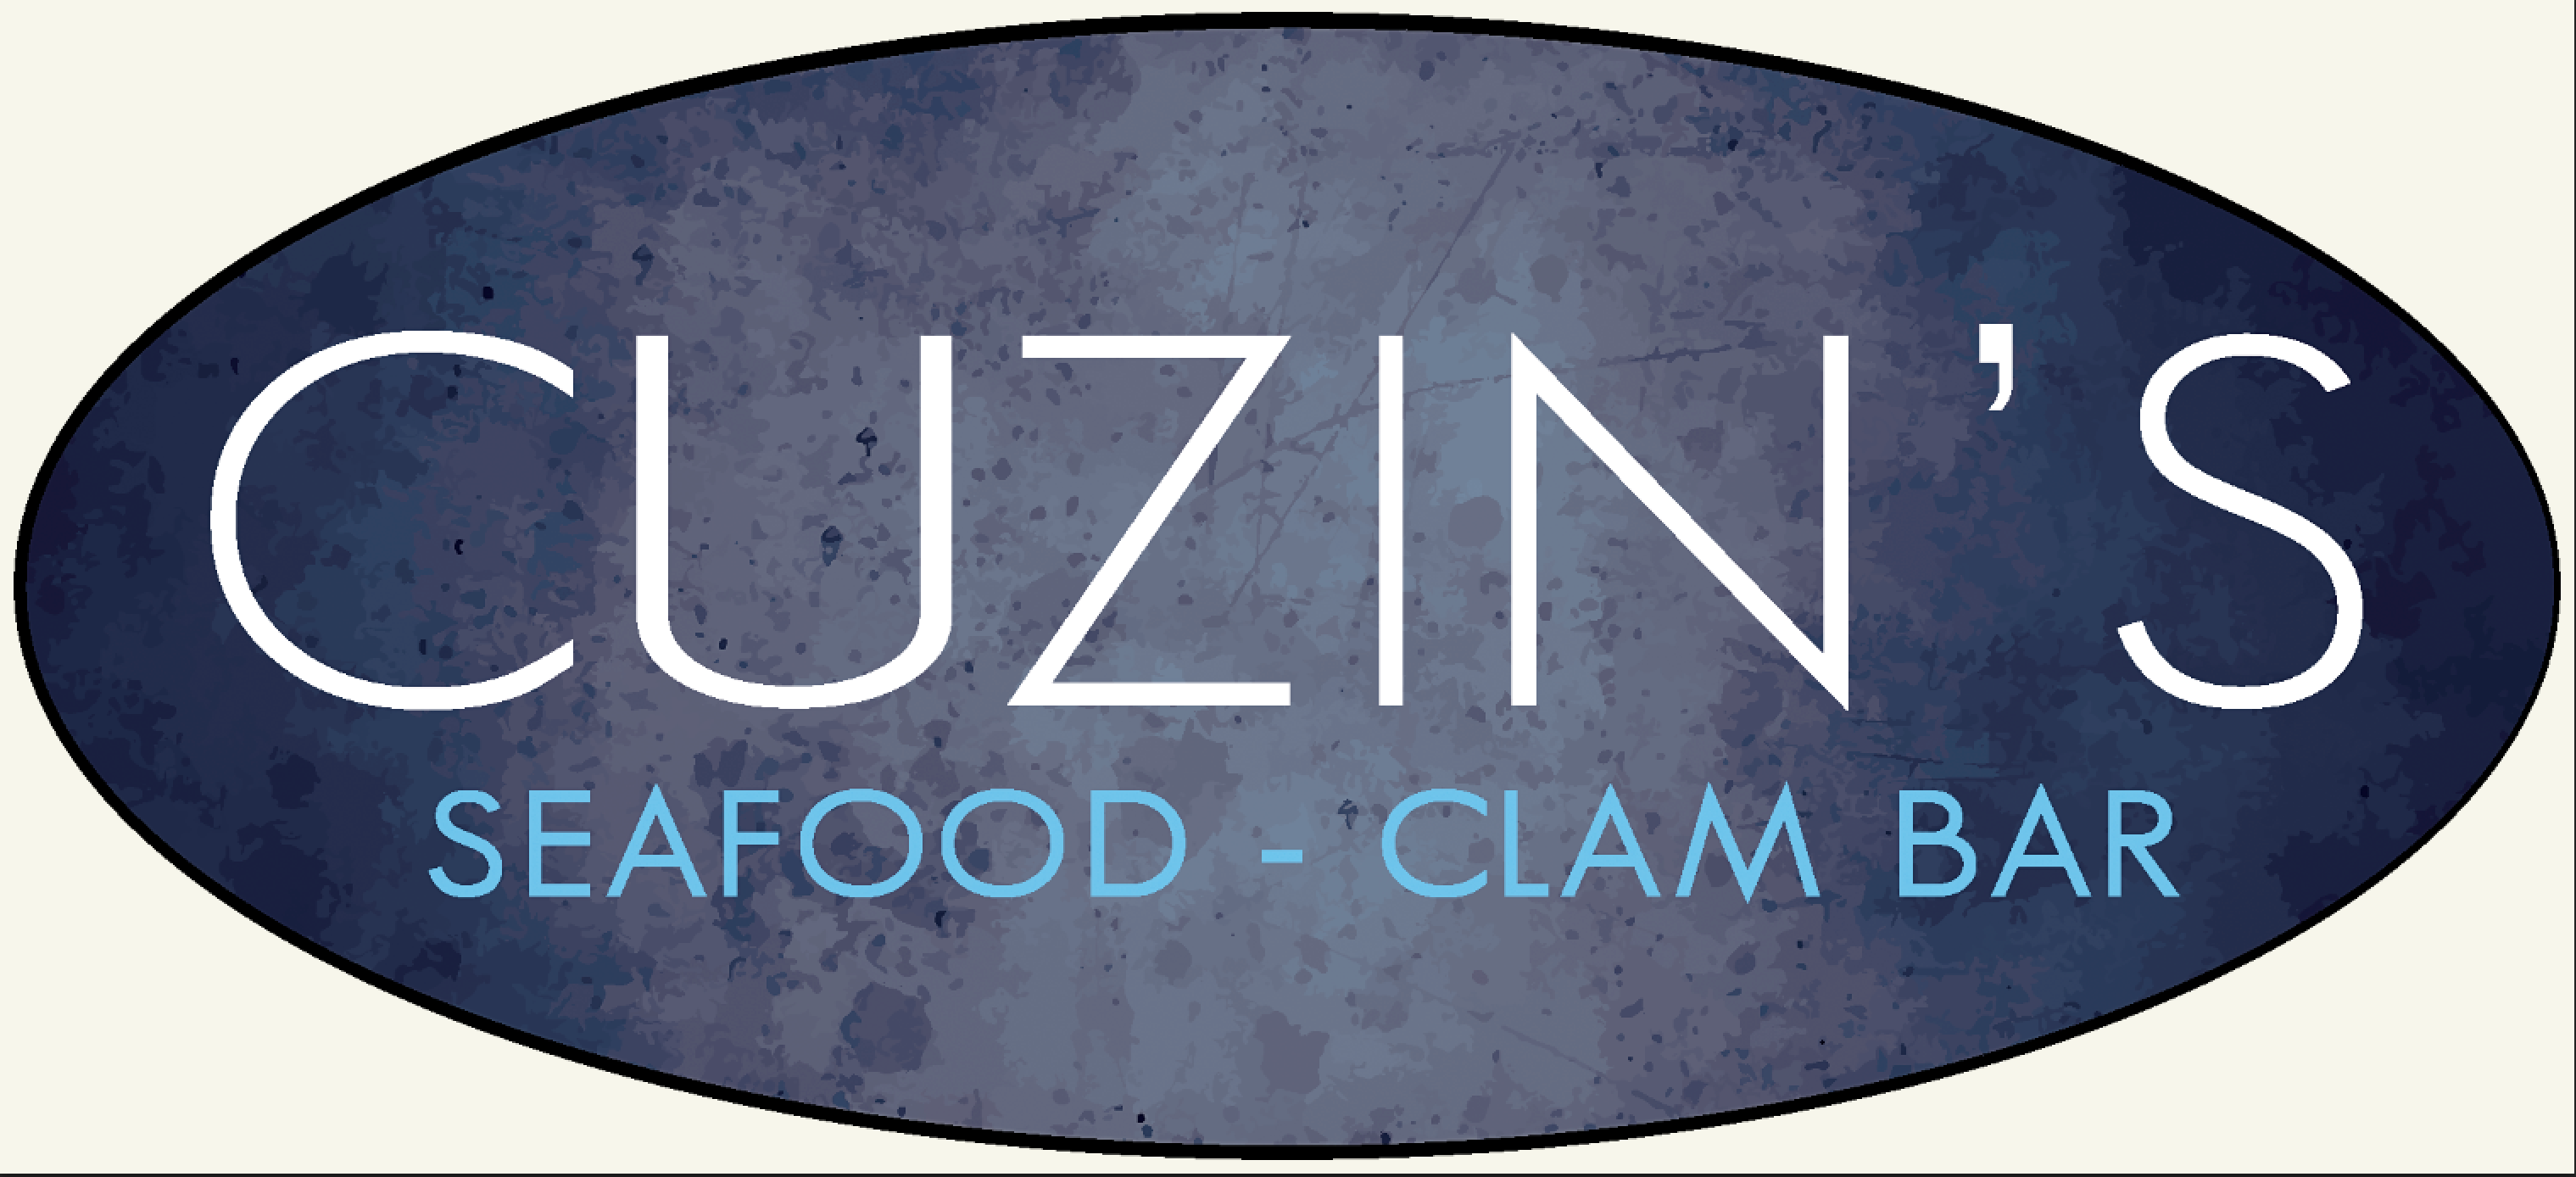 Cuzins Seafood and Clam Bar